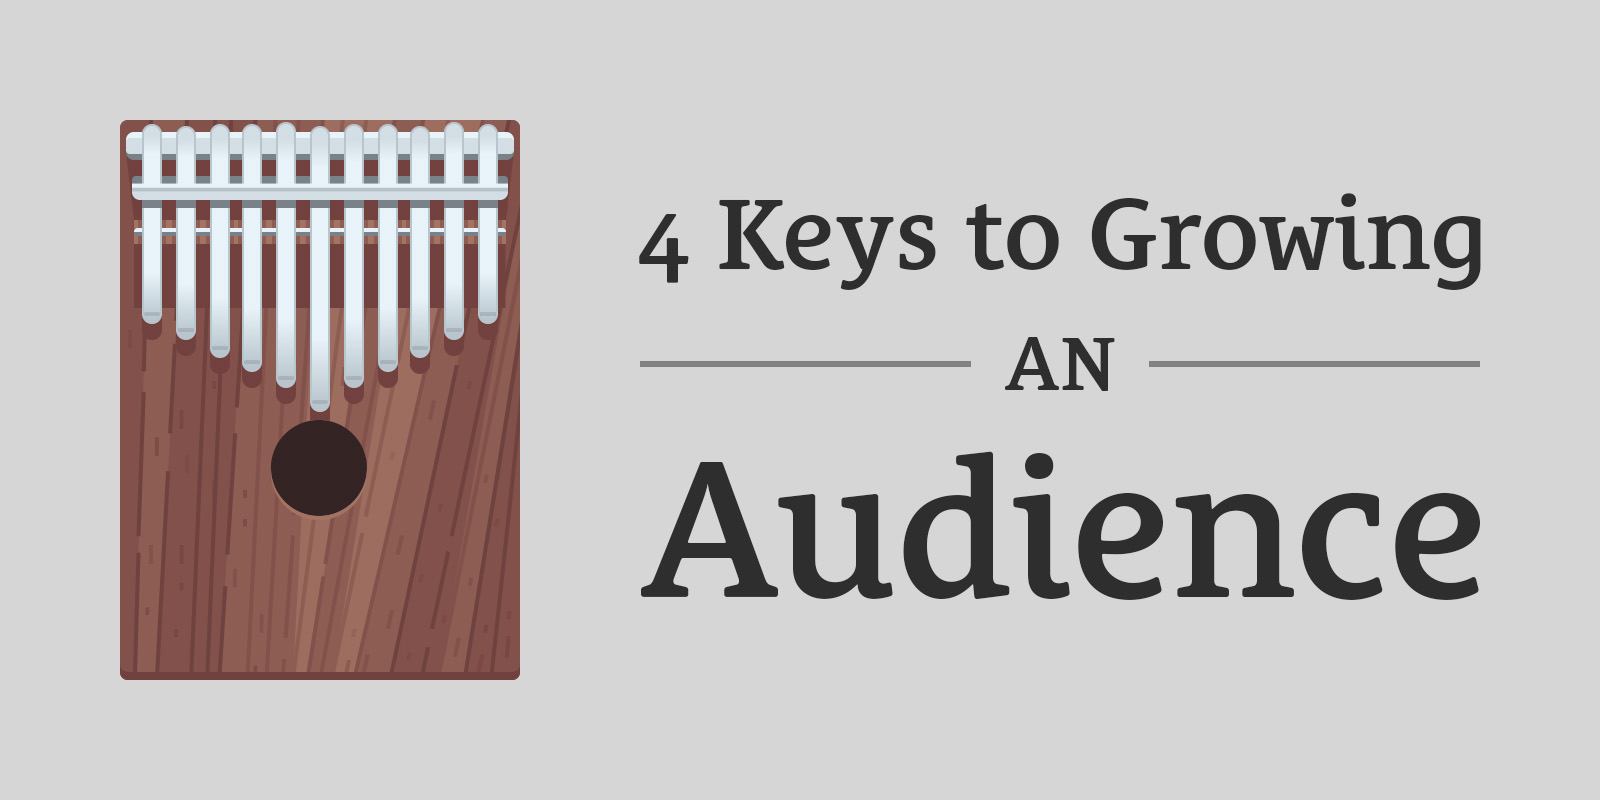 240-4-keys-to-growing-an-audience